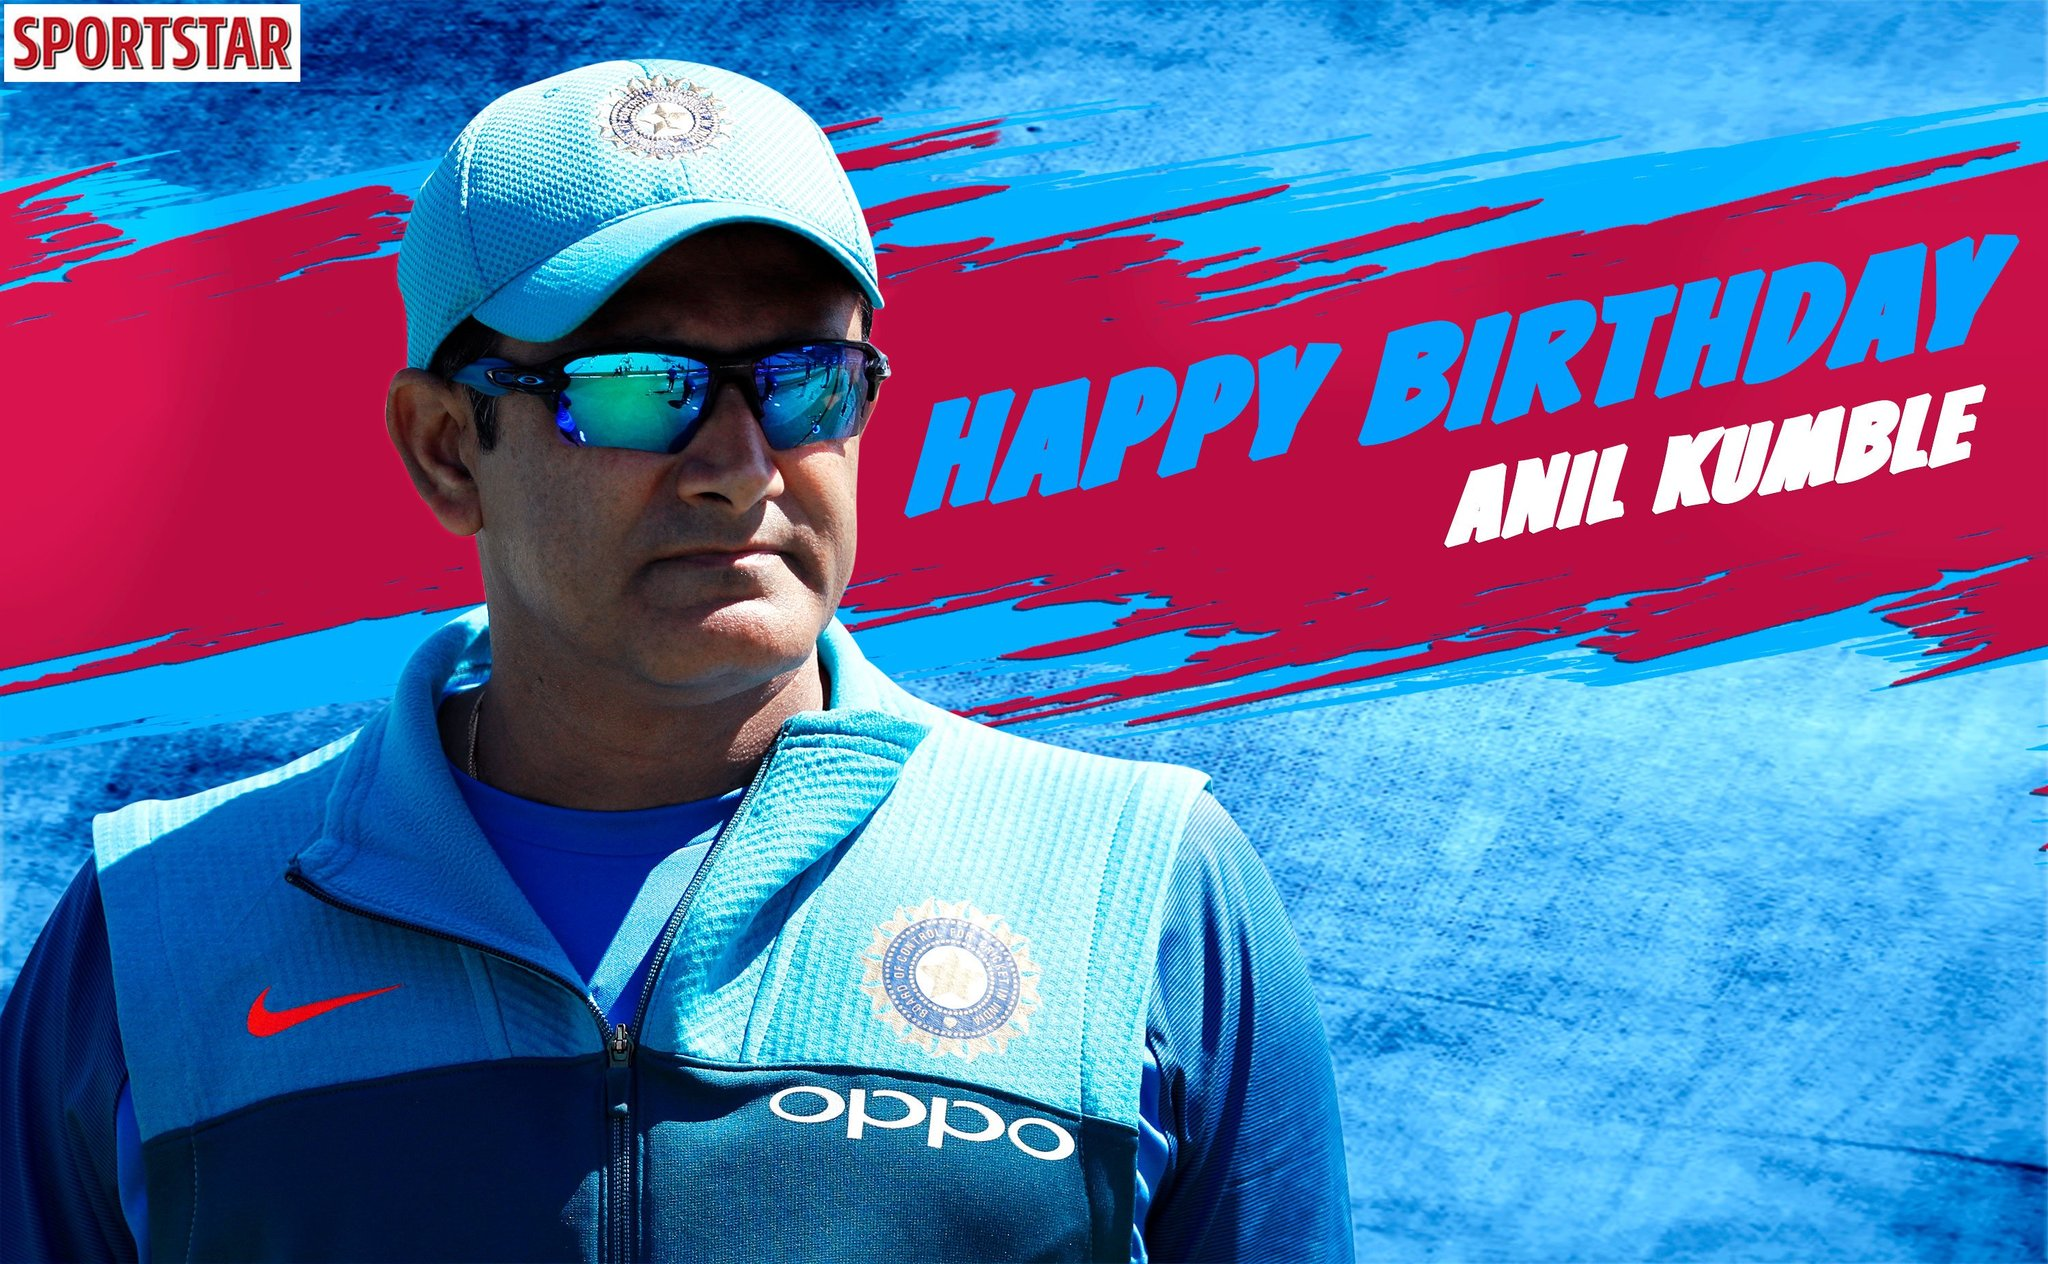 4  0 3  International Appearances.  6  1  9  Test Wickets.  3  3  7  ODI Wickets.   Happy Birthday Anil Kumble!